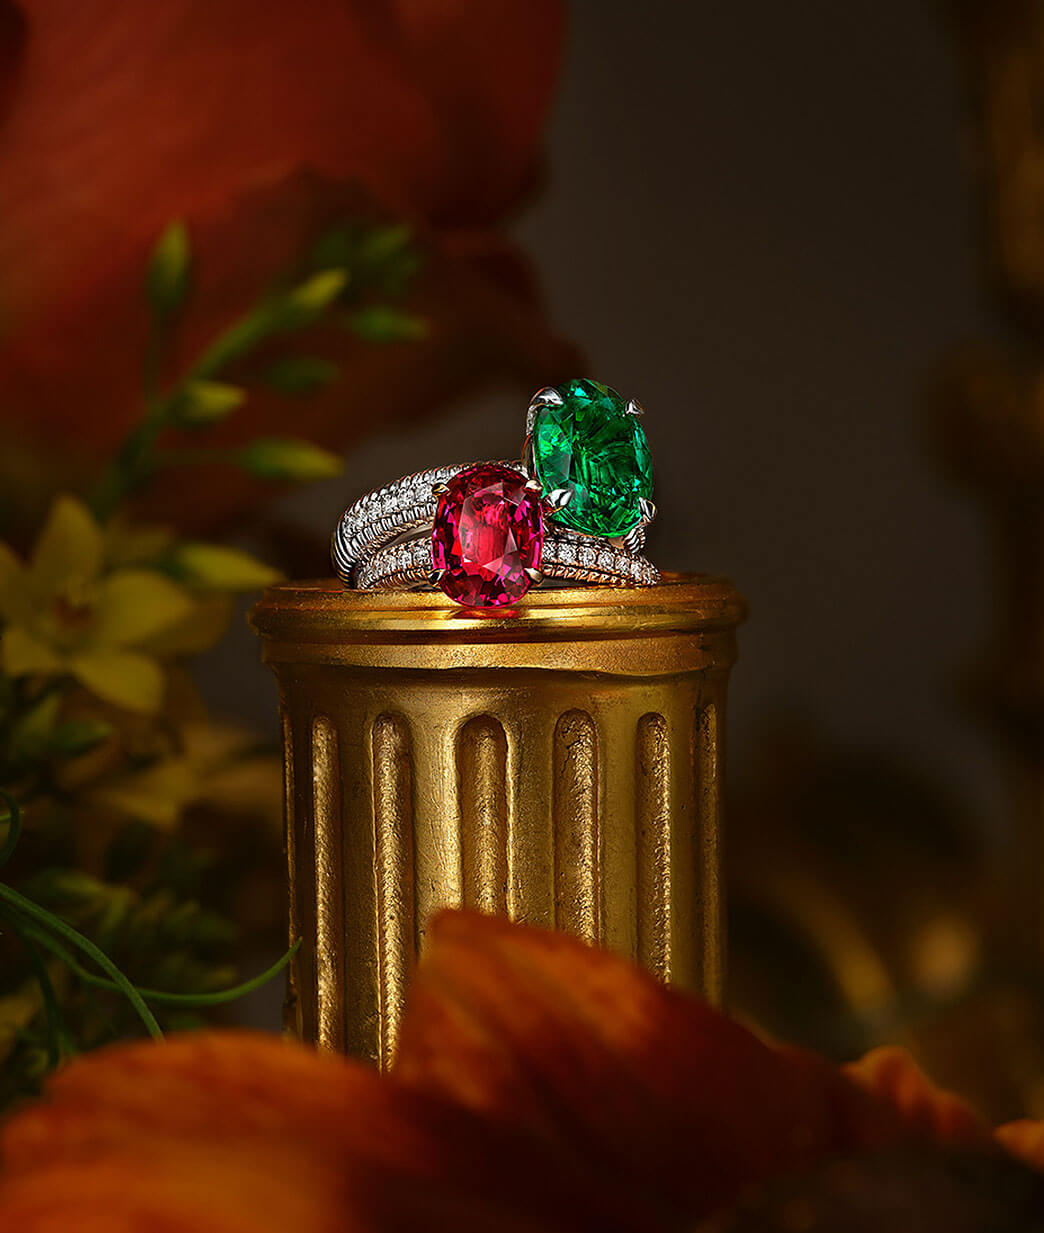 Close up view of two rings from the three colours of love collection. Ring on top: Fluted rose gold band encrusted in small red rubies – Fabergé Ruby Rose Gold Fluted Band. Ring on bottom: Fluted rose gold band encrusted with small white diamonds – Fabergé Diamond Rose Gold Fluted Band.